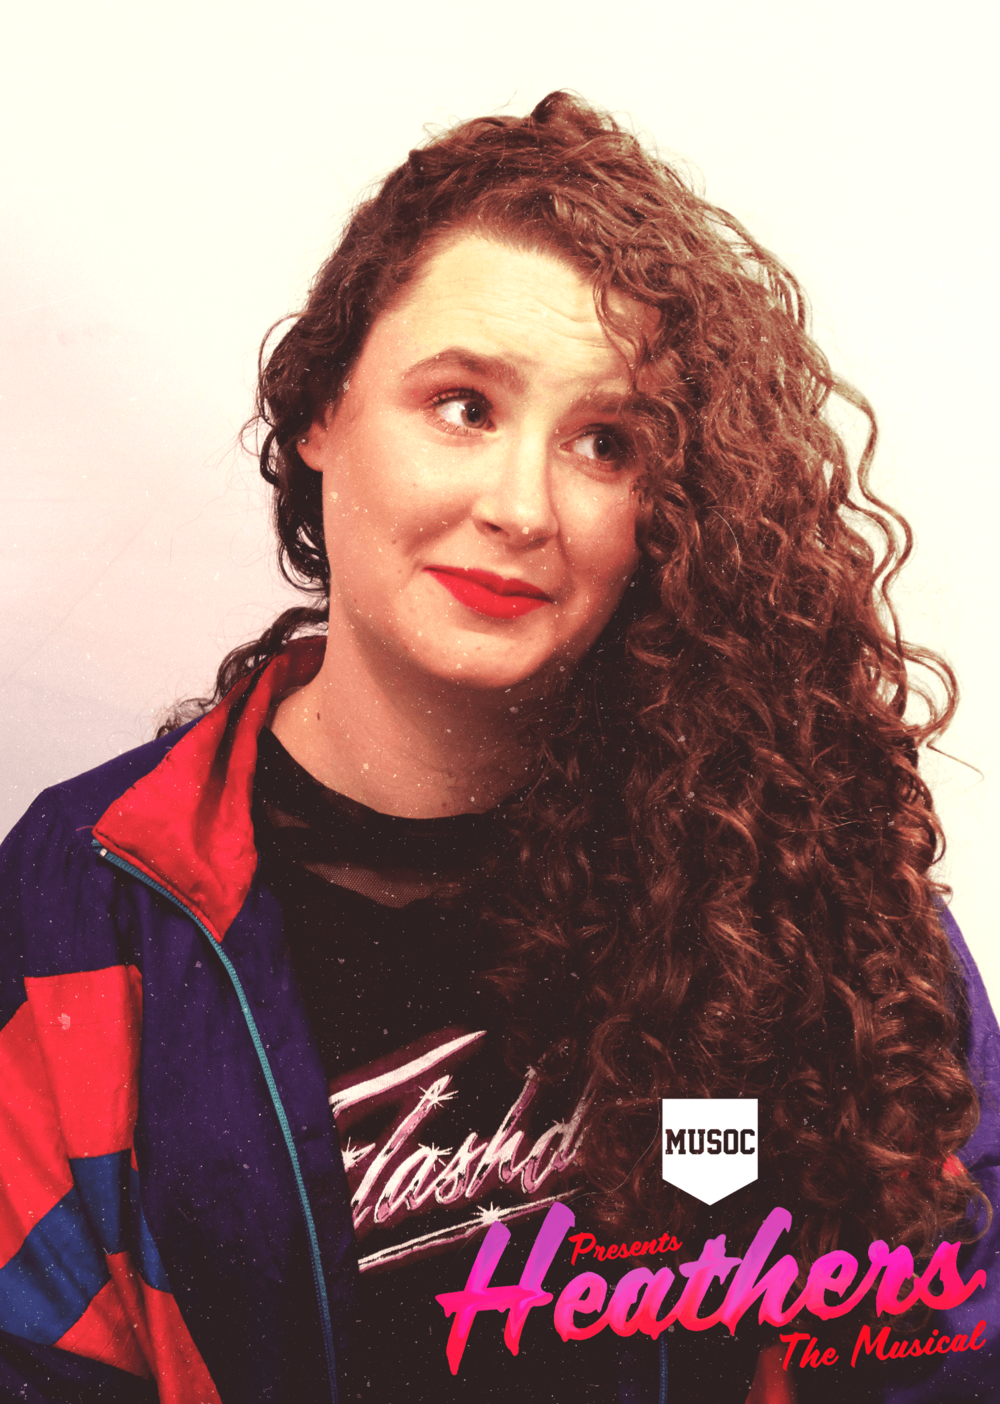 TAMSIN REES  Tamsin has appeared in several MUSOC shows from 2016 to now, Heathers being her 7th performance with the club. By day she hides in the disguise of an OSCAR coordinator, but don't be fooled, she's an absolute menace onstage